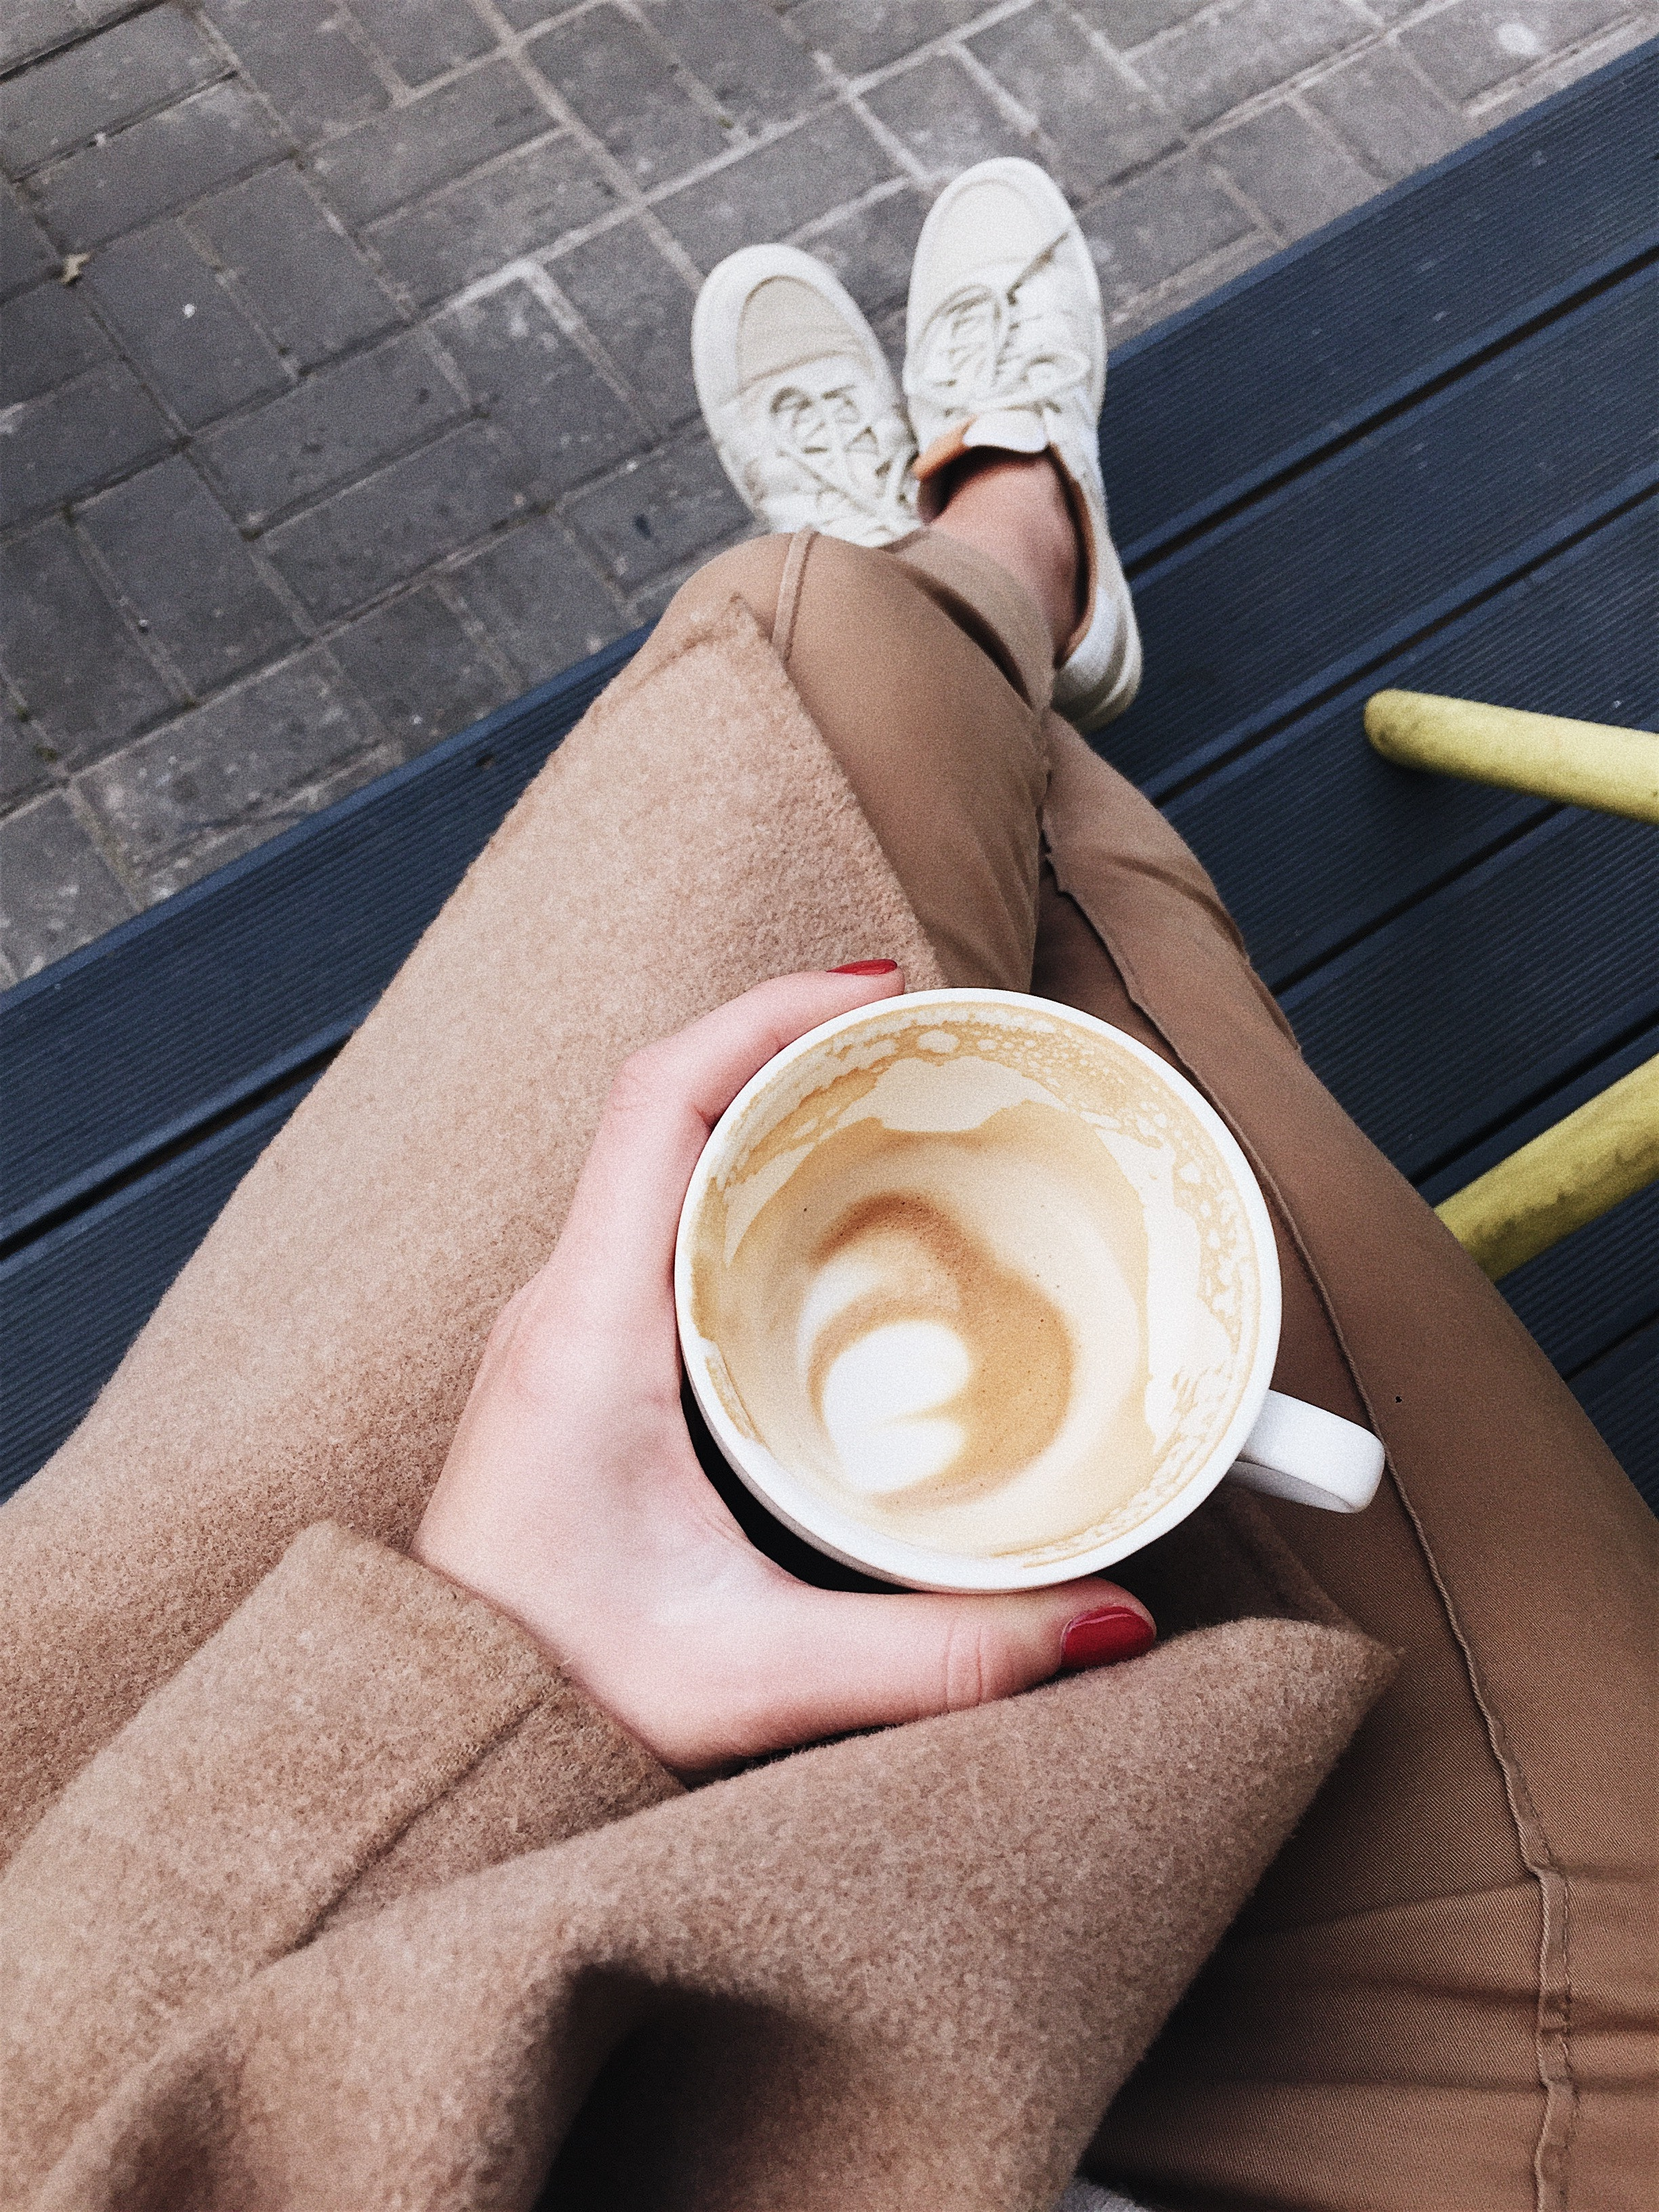 person-holding-coffee-cup-1841126.jpg